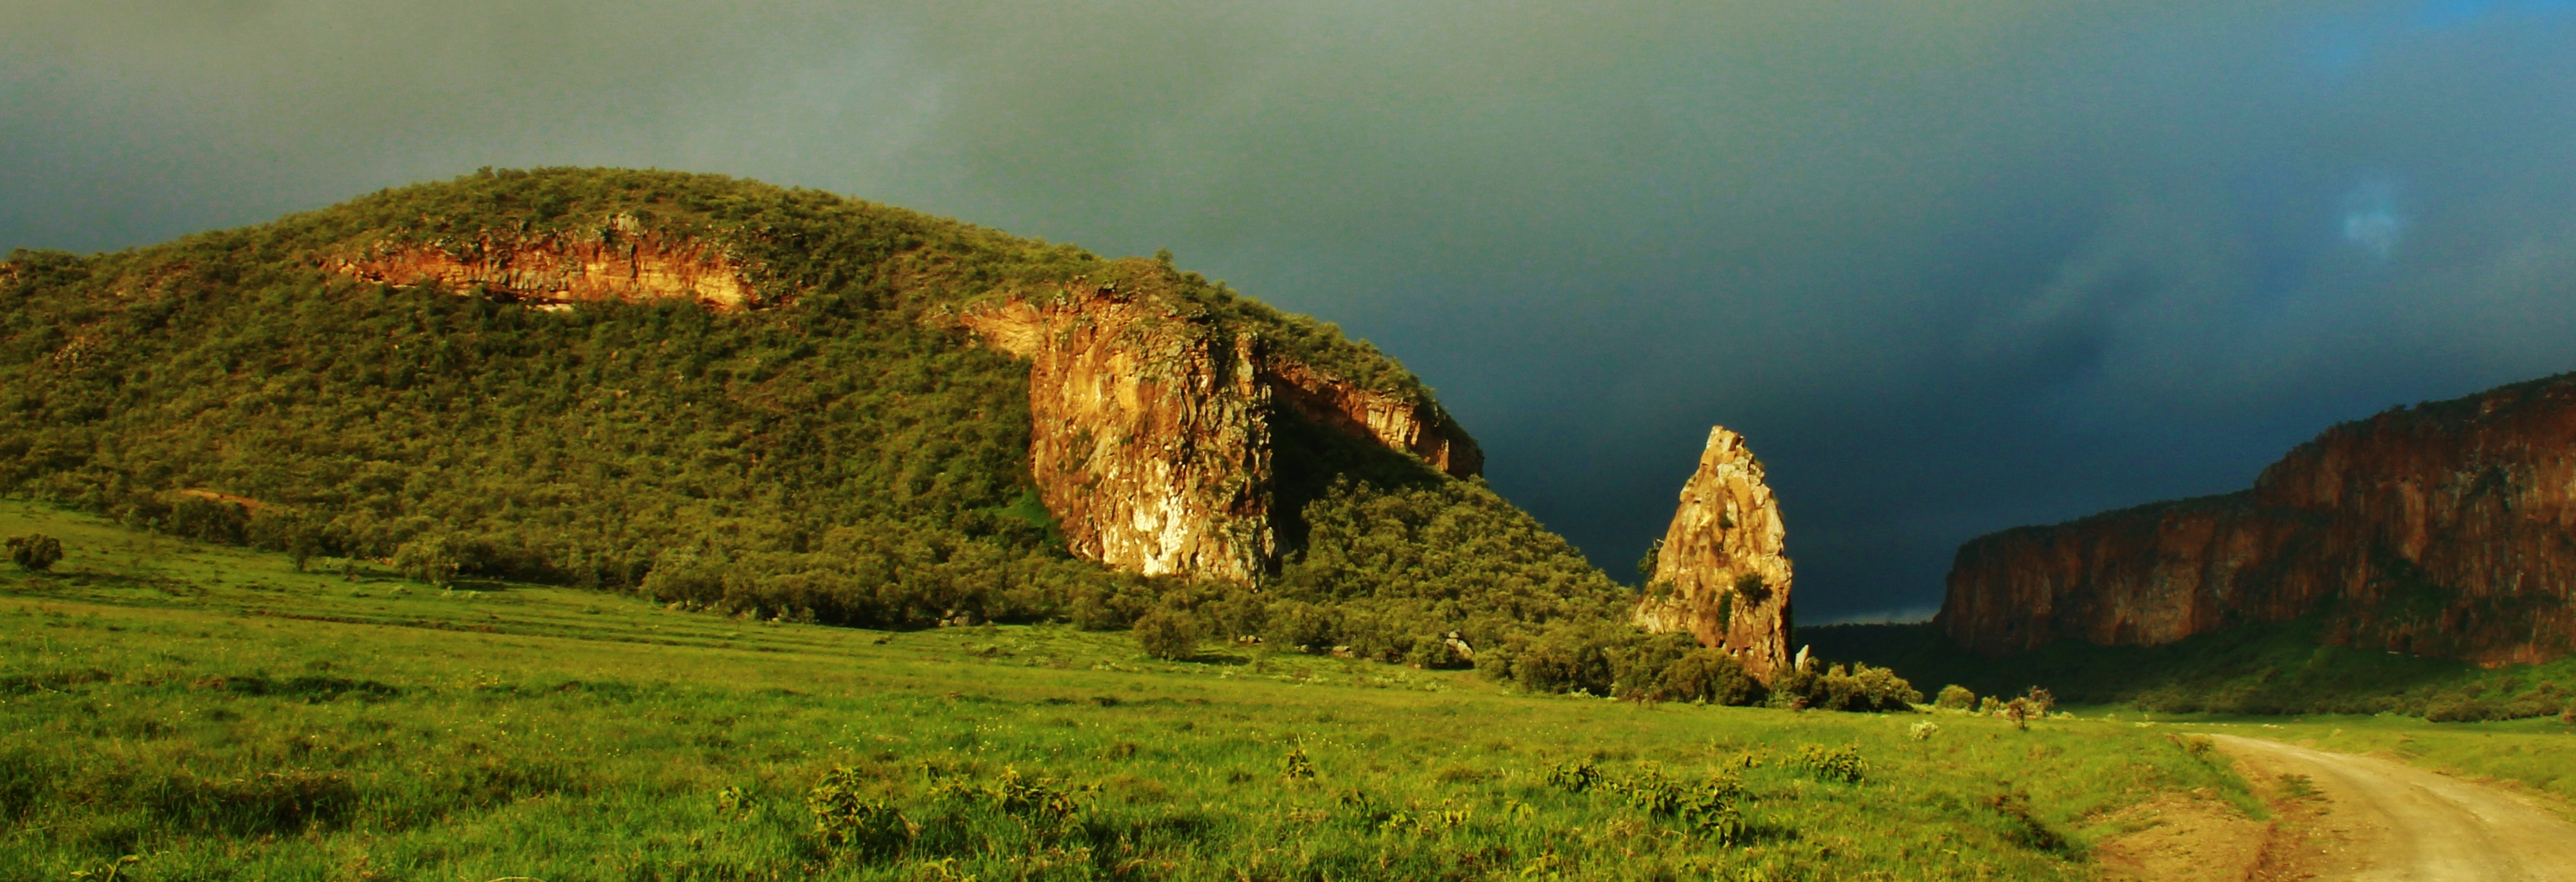 Storm approaching over Fischer's Tower in Hell's Gate National Park